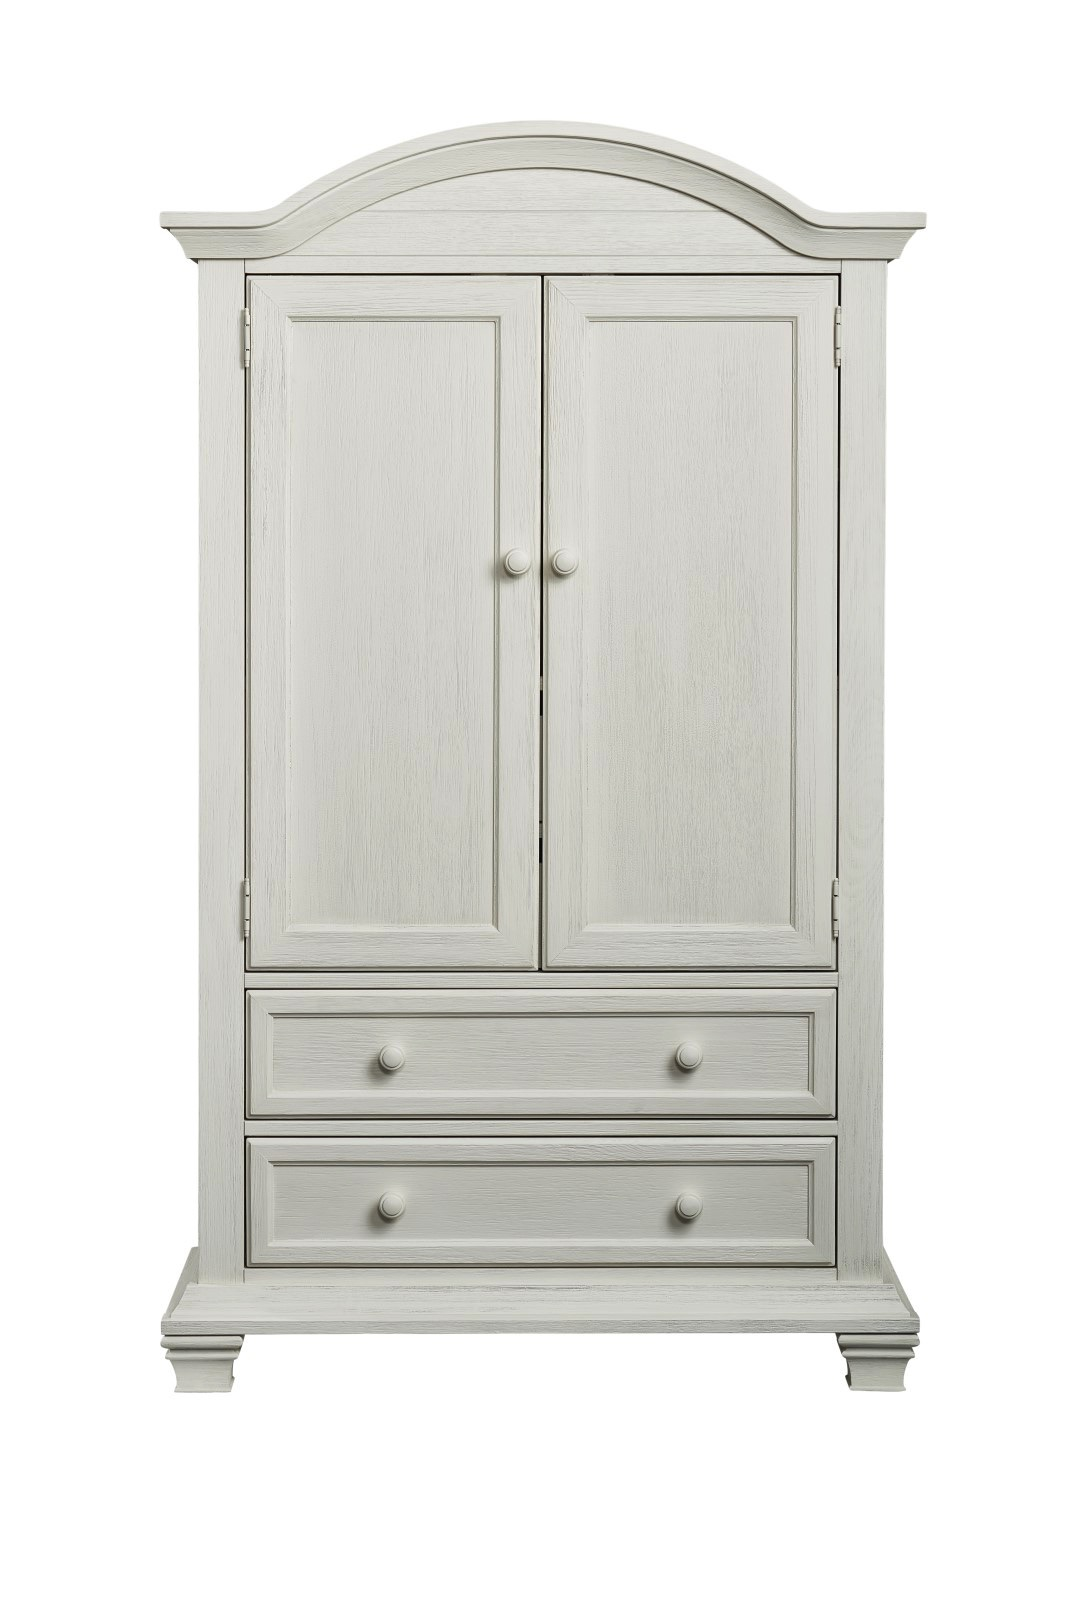 armoire s uk armoires designer beautiful furniture wardrobe hestia bambizi nursery children square